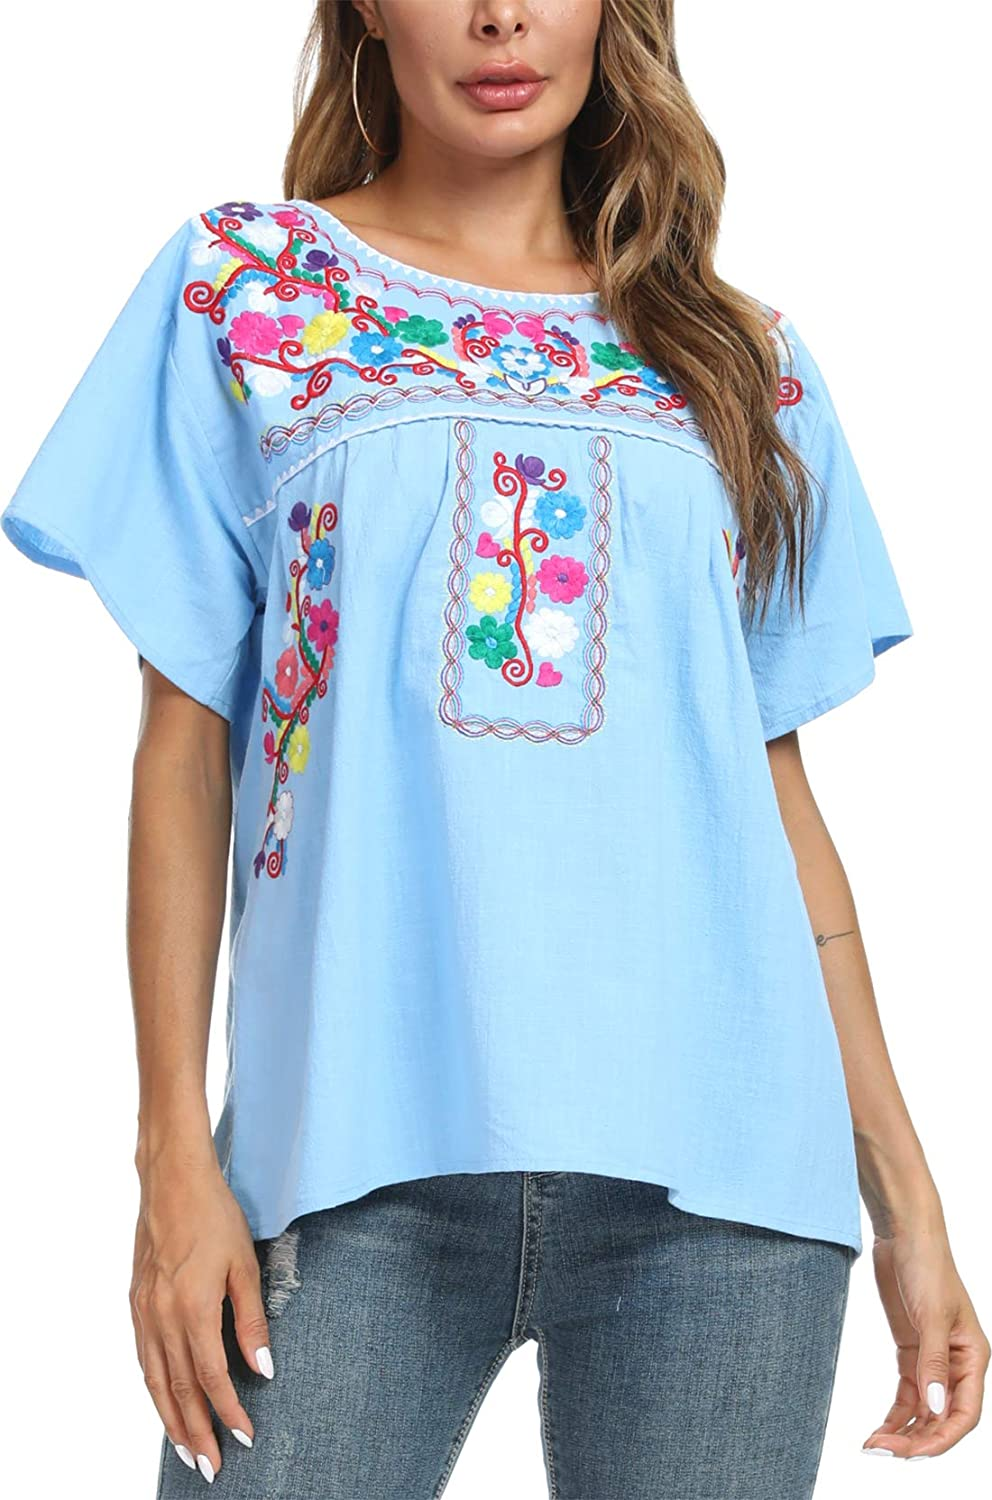 YZXDORWJ Womens Summer Casual Embroidered Blouse Short Sleeve Tops